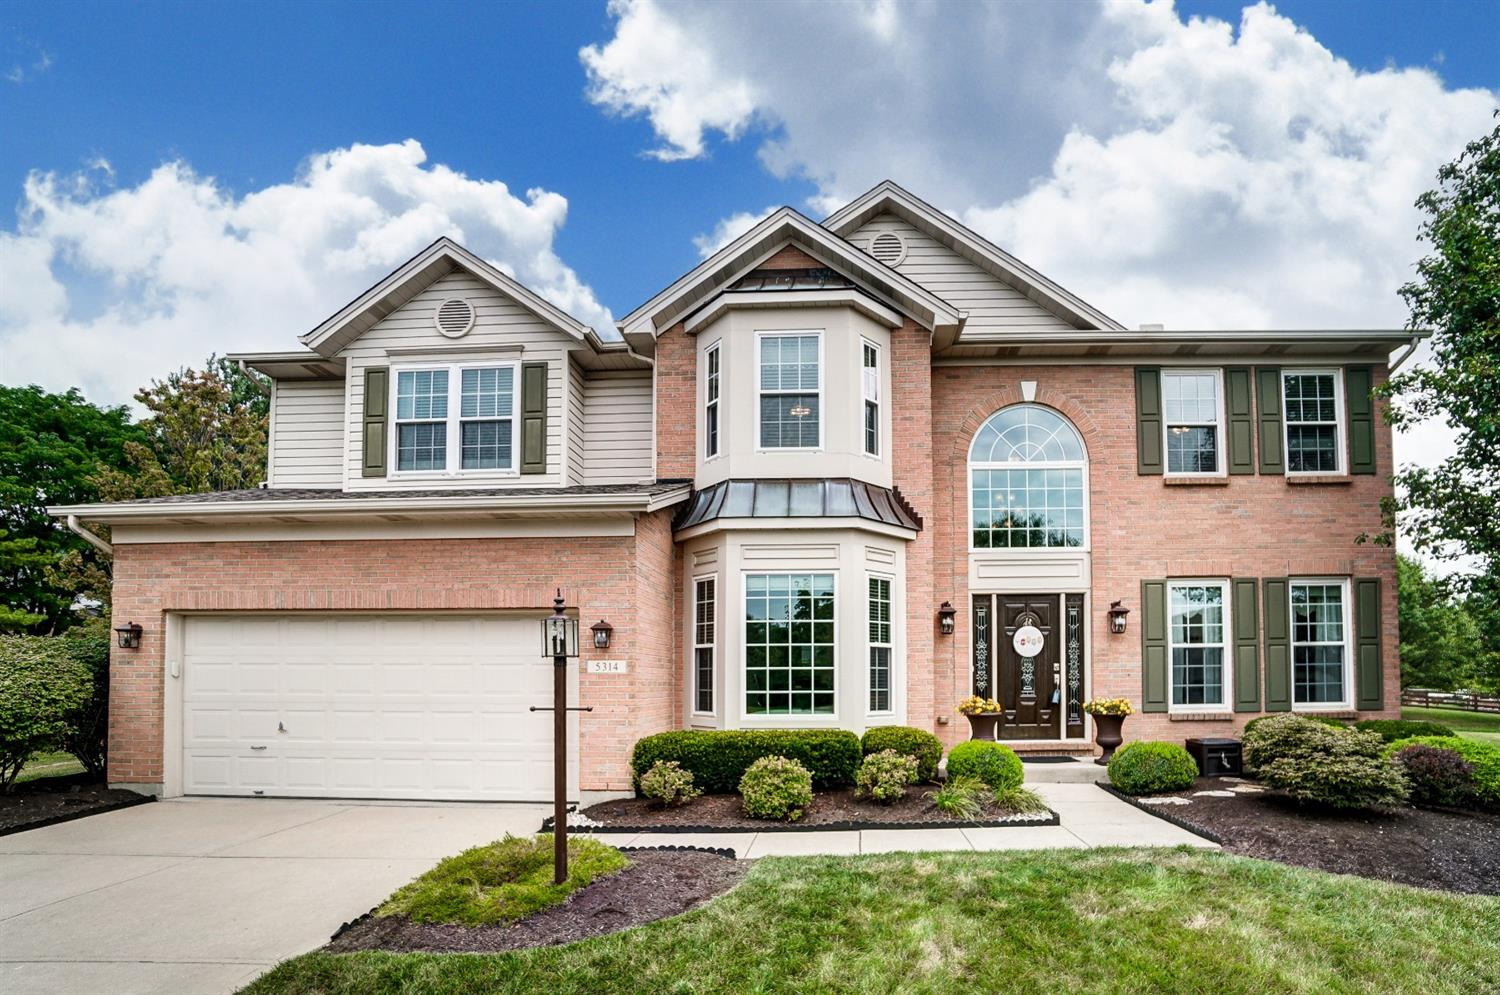 Property for sale at 5314 Farmmeadow Court, West Chester,  Ohio 45069